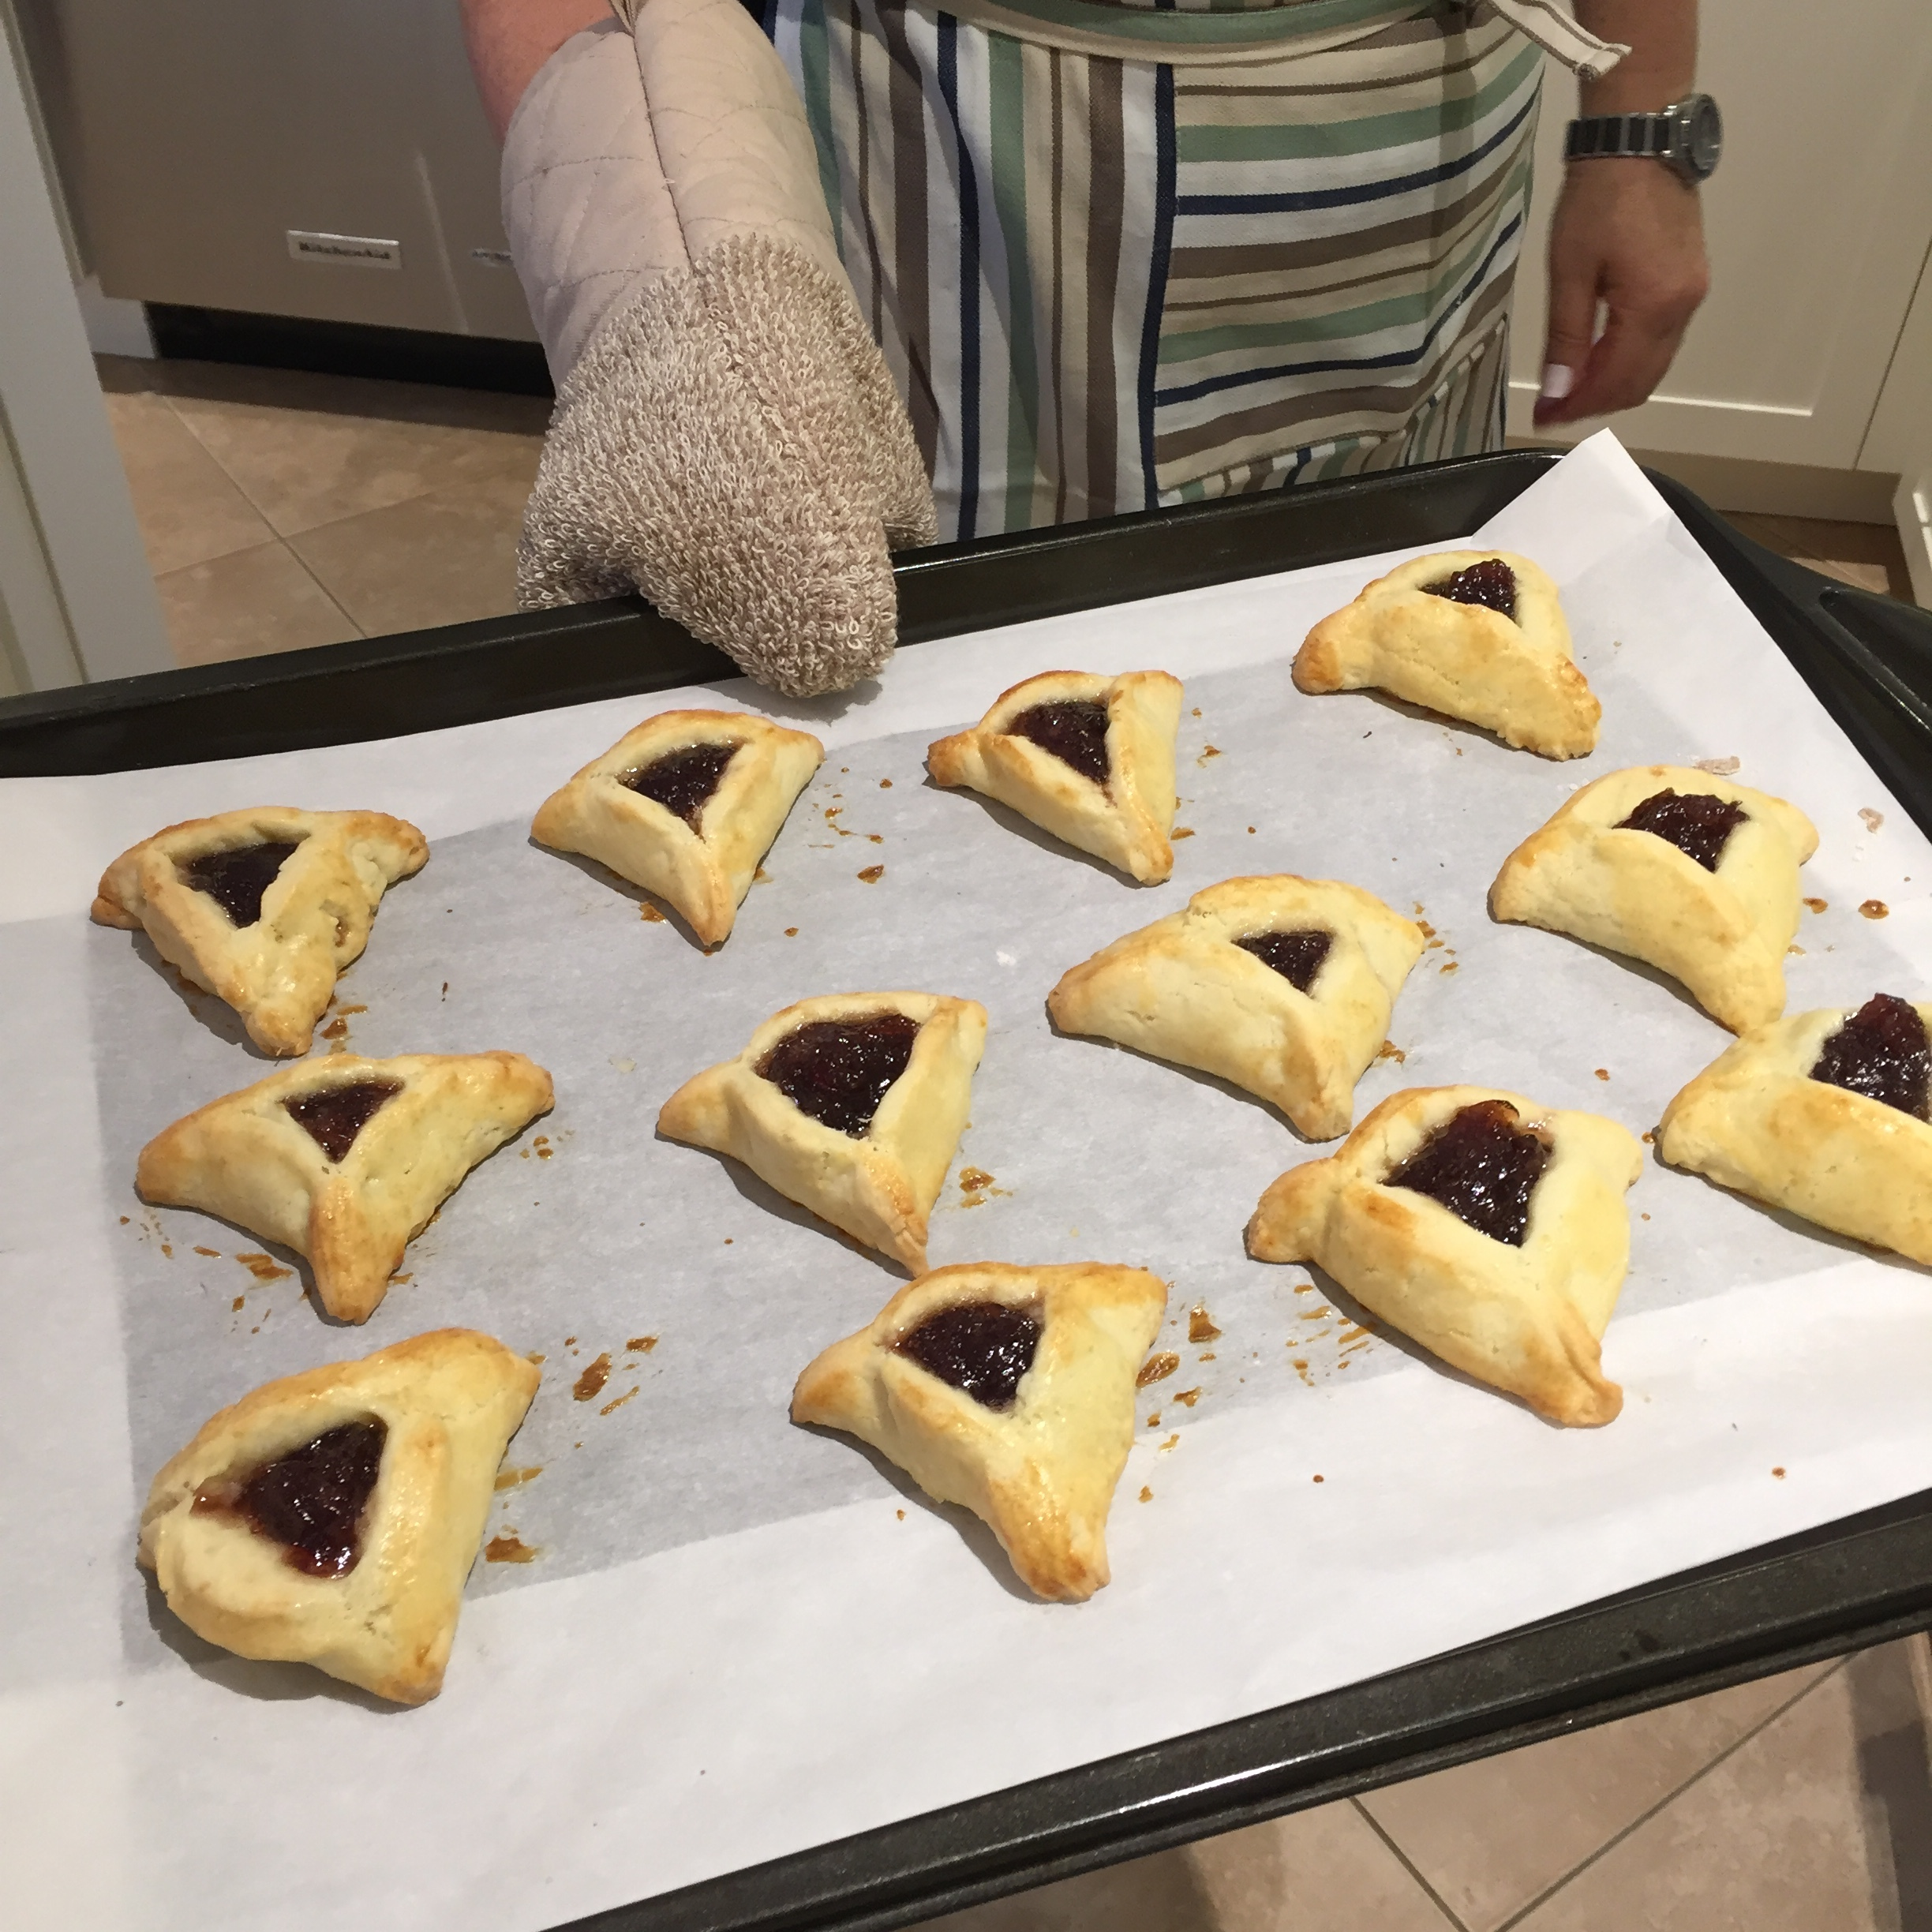 Hot out of the oven Strawberry Jam Hamantaschen